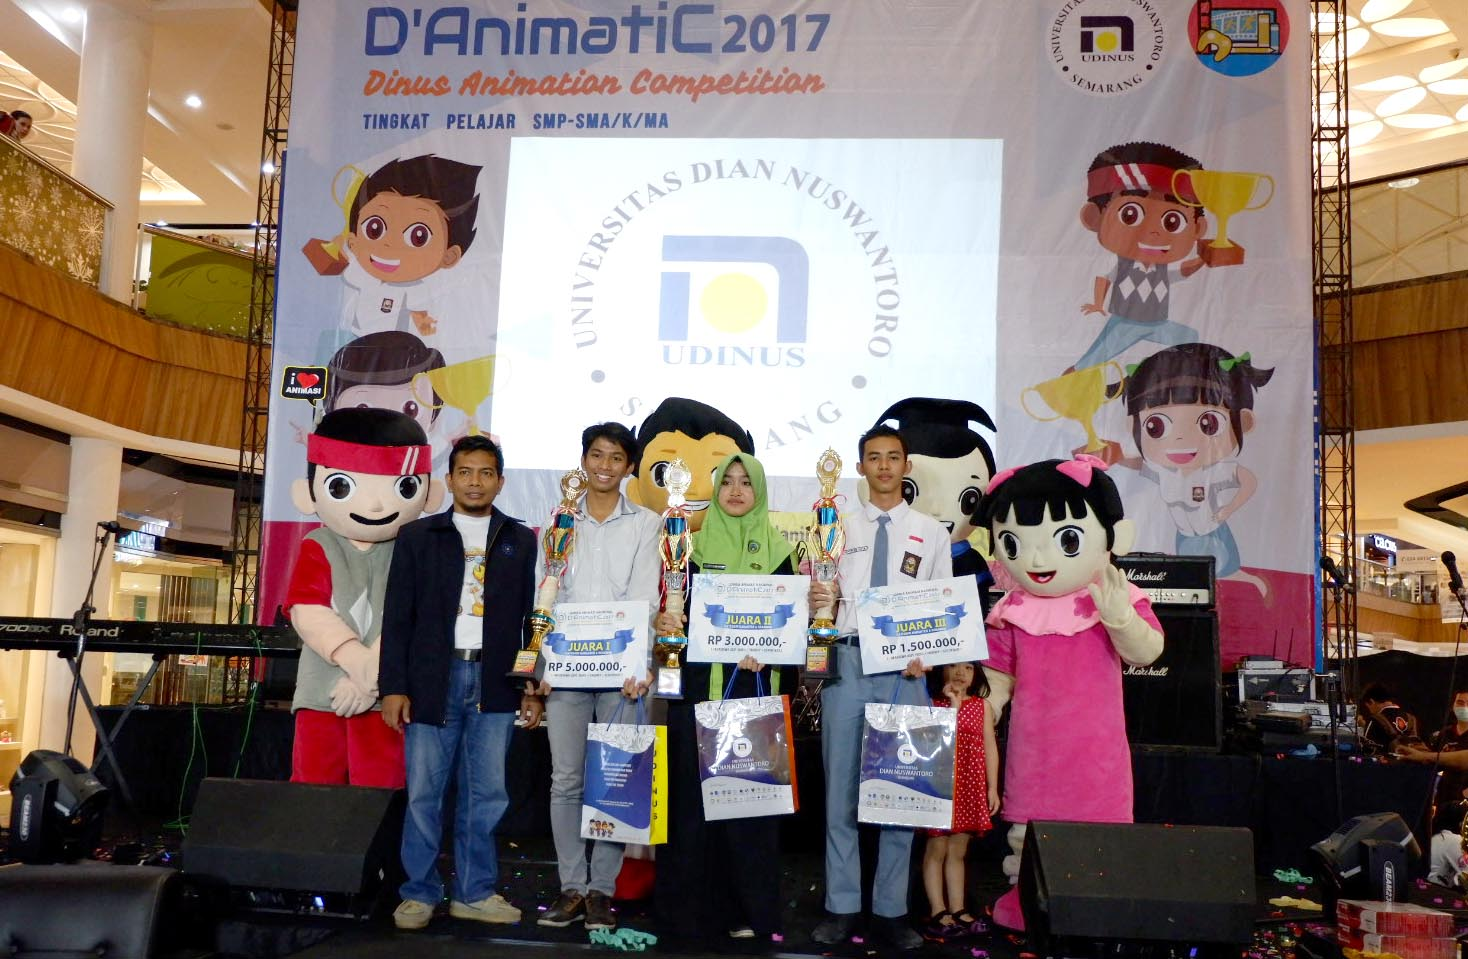 YOUNG ANIMATORS OF D'ANIMATIC